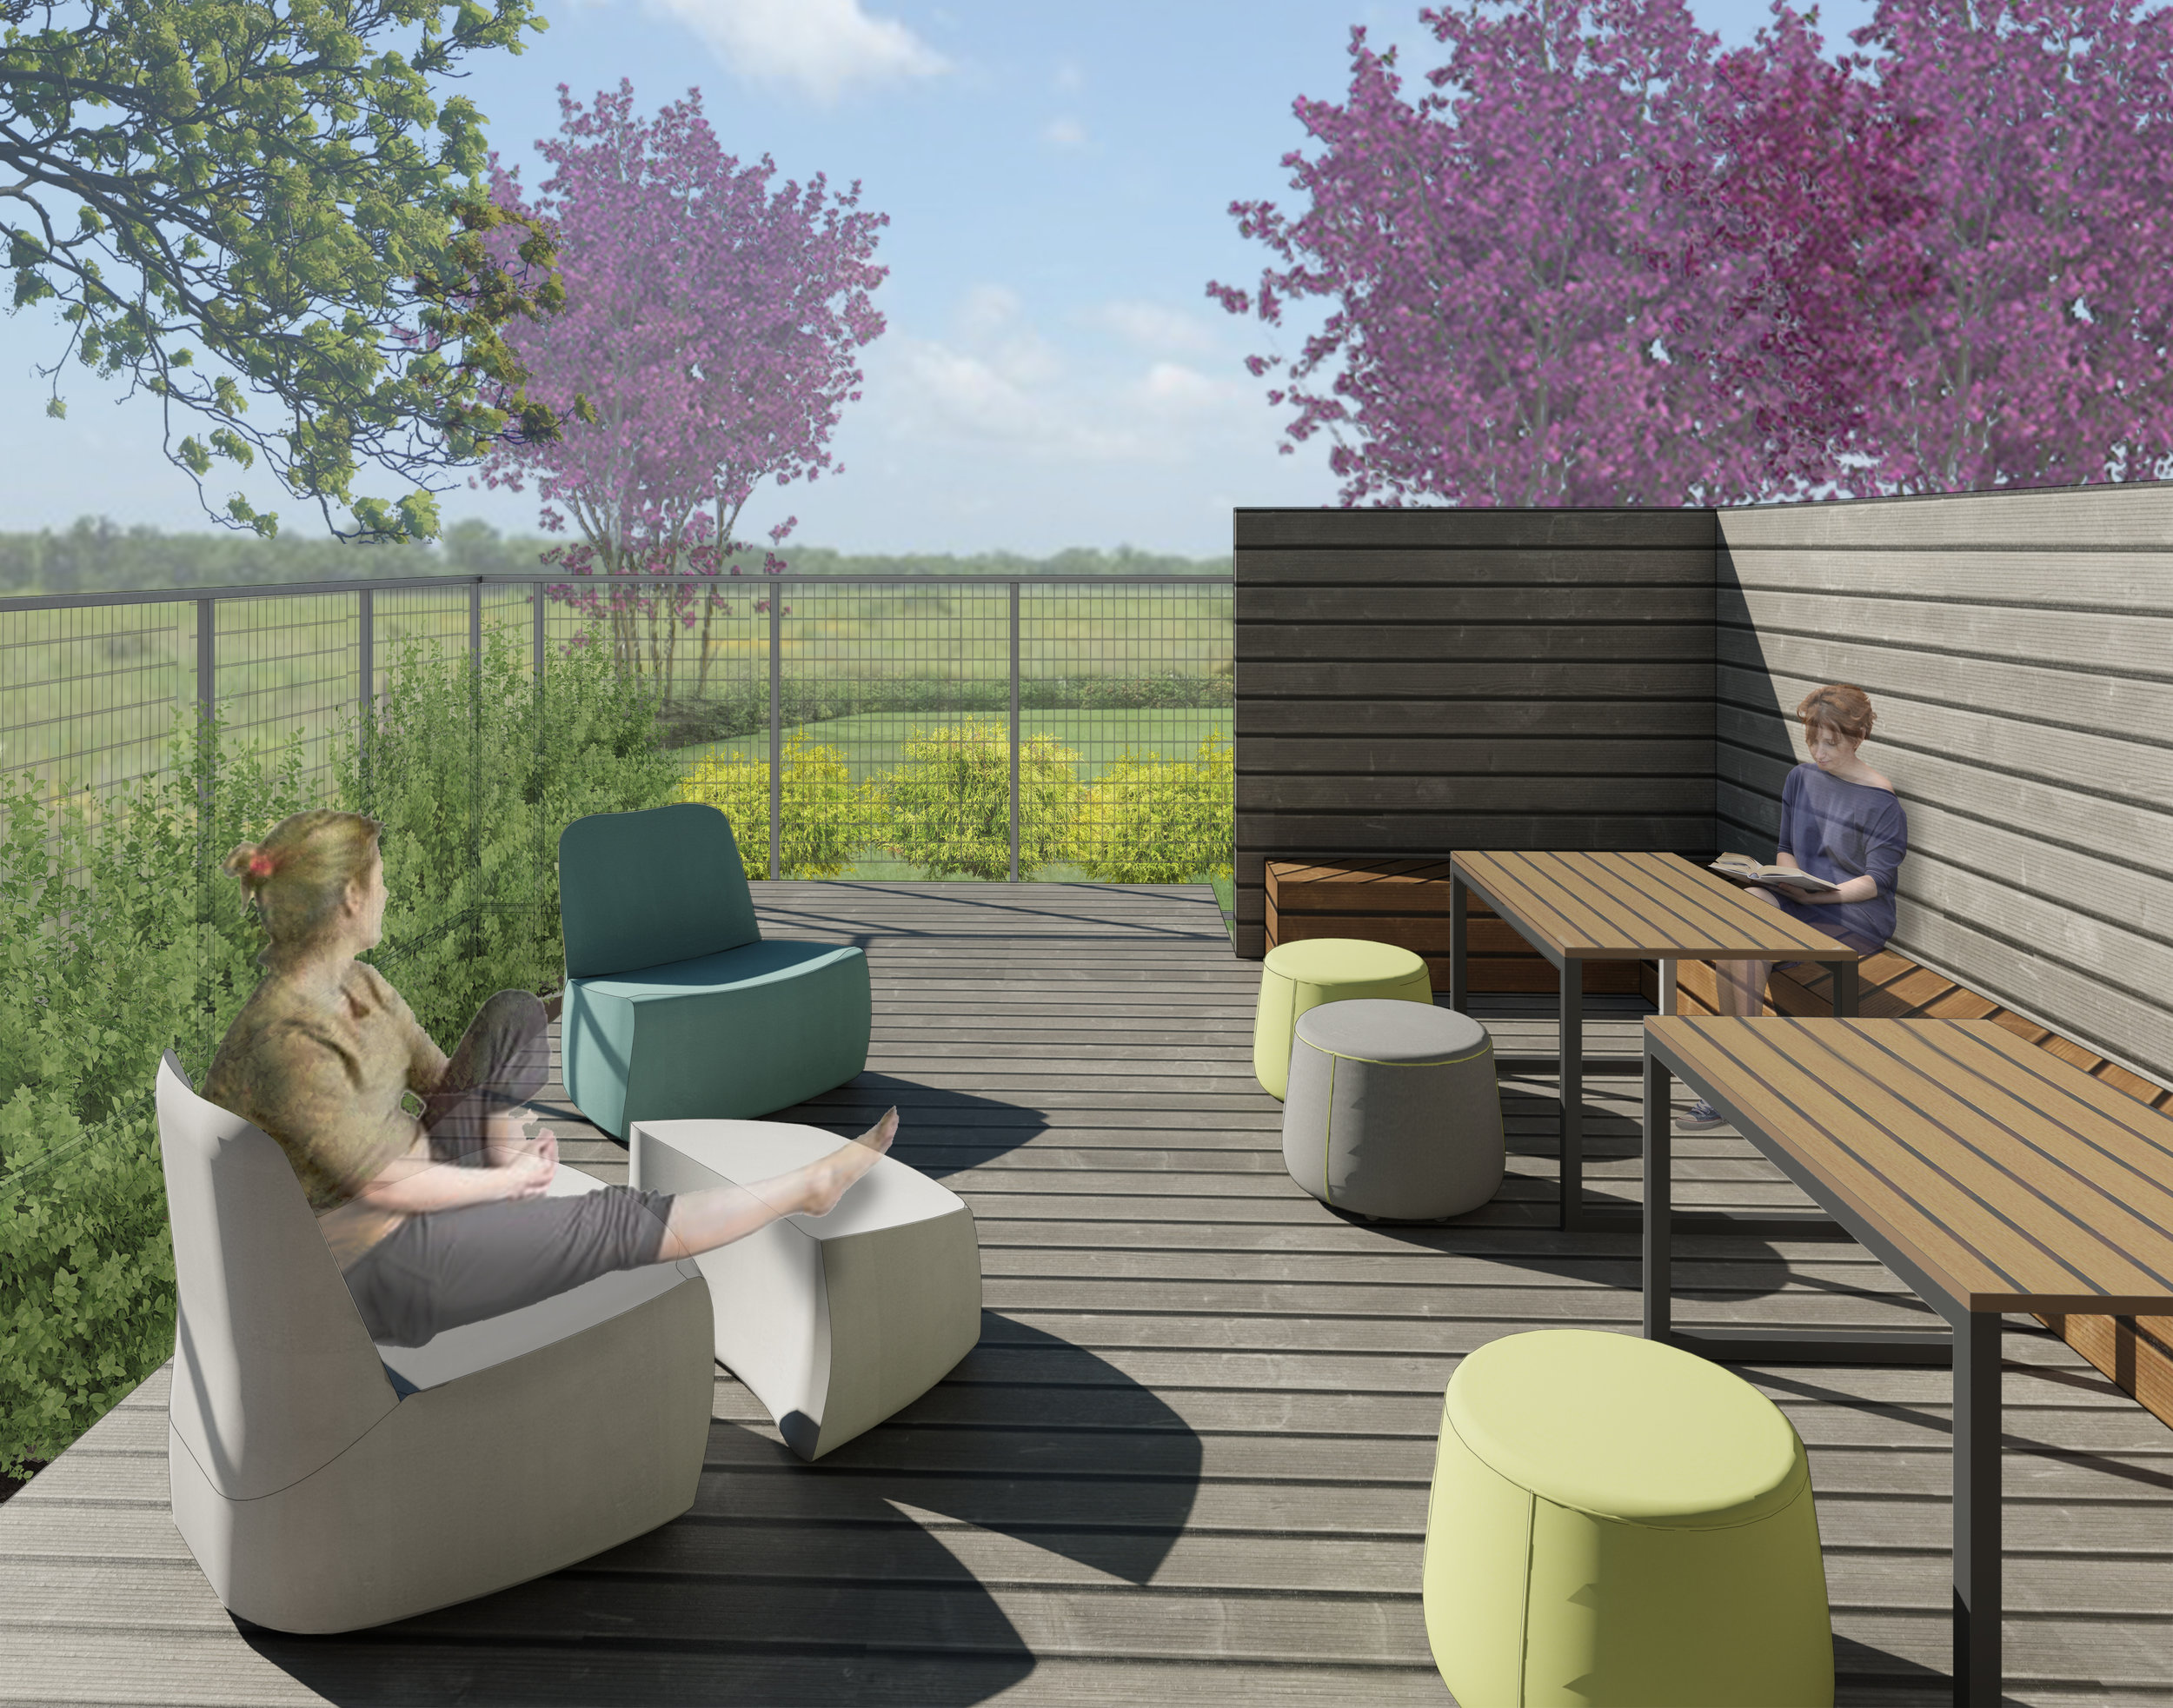 Secure outdoor space was a key component of the design of the residential facility, allowing residents a space to decompress and experience the outdoors in a more secluded setting without risk of self harm.